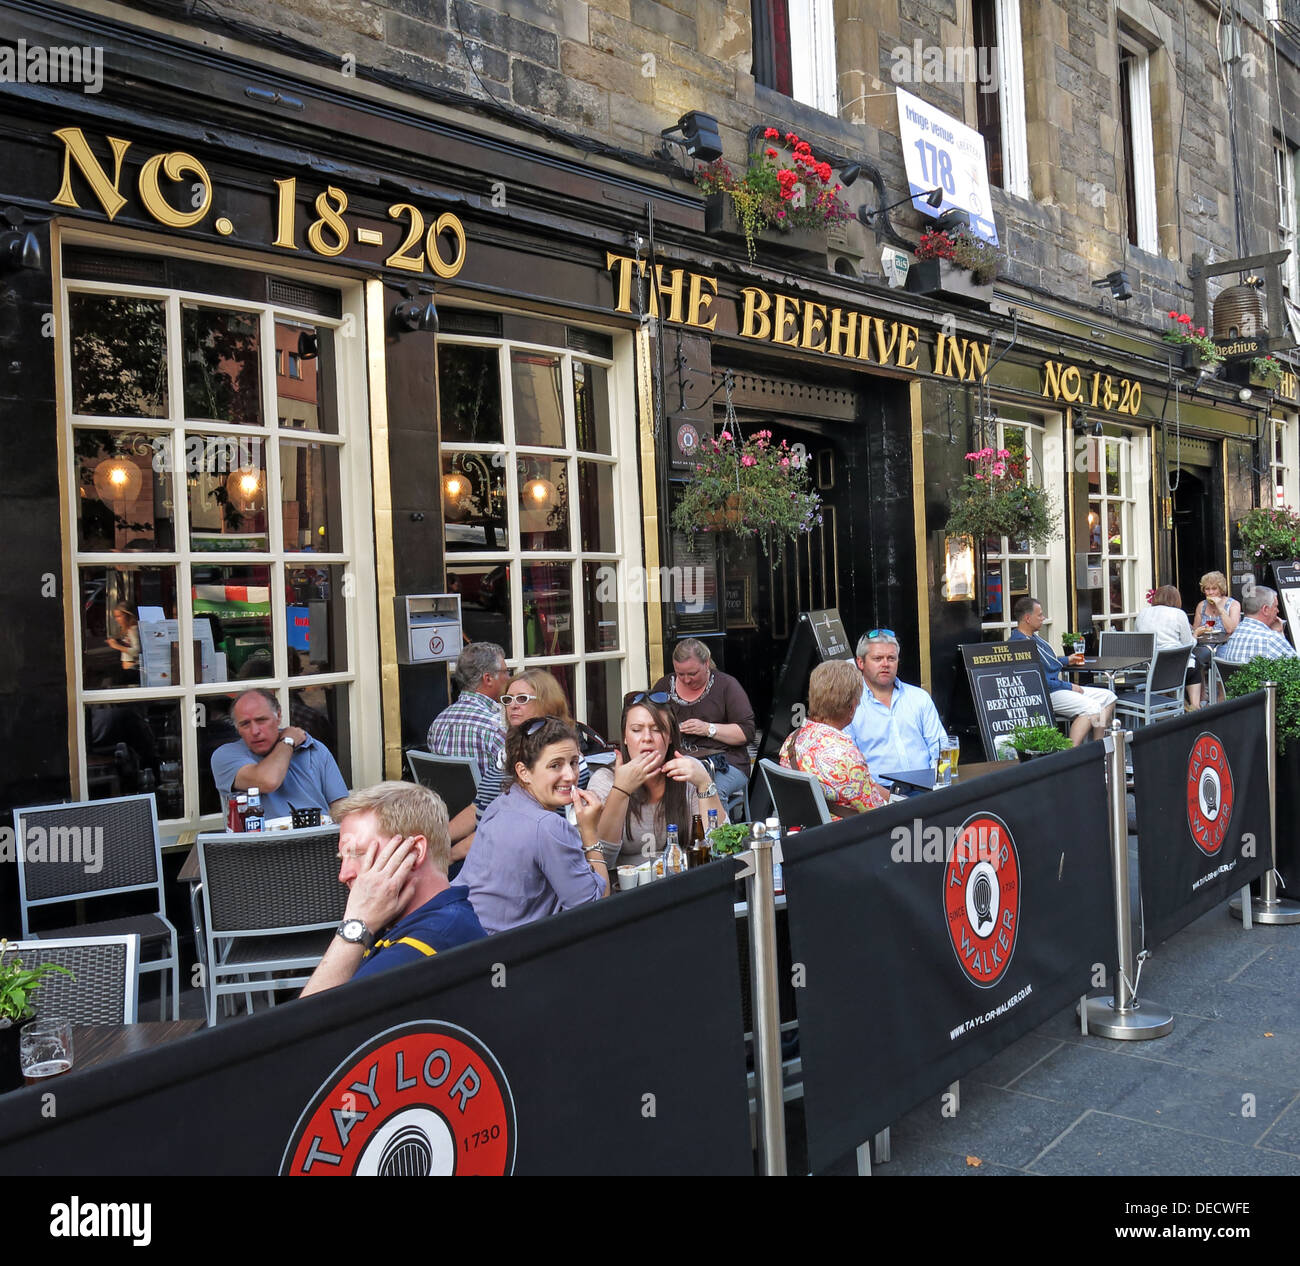 Taylor Walker No 18-20 Grassmarket Beehive Inn,Edinburgh,Scotland,UK - Stock Image